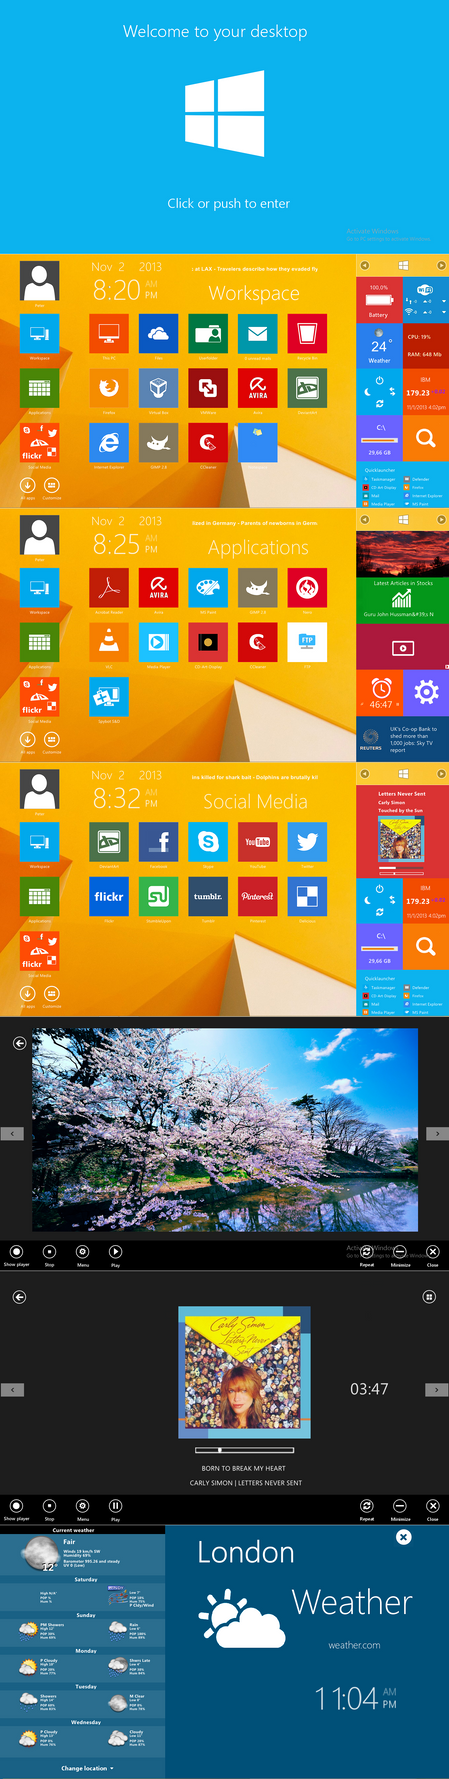 Windows 8.1 RTM desktop replacement by PeterRollar